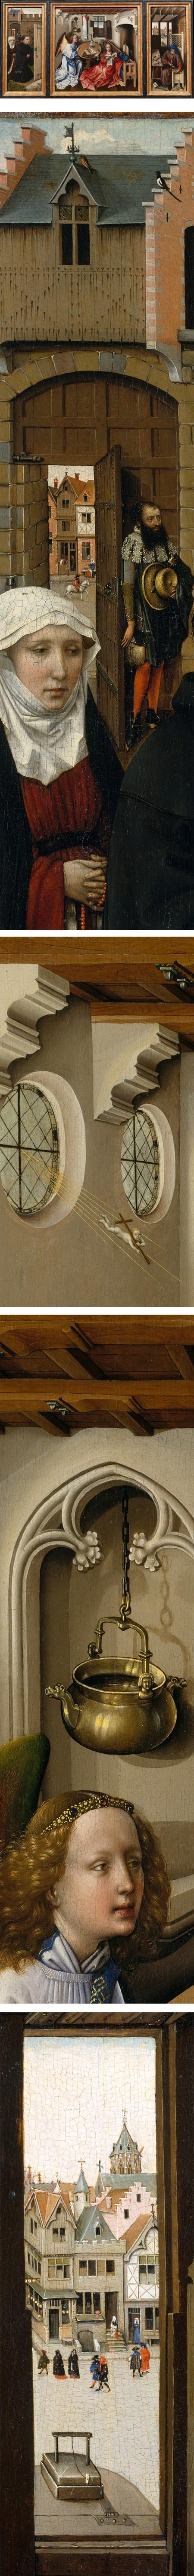 Annunciation Triptych (Merode Altarpiece), Workshop of Robert Campin